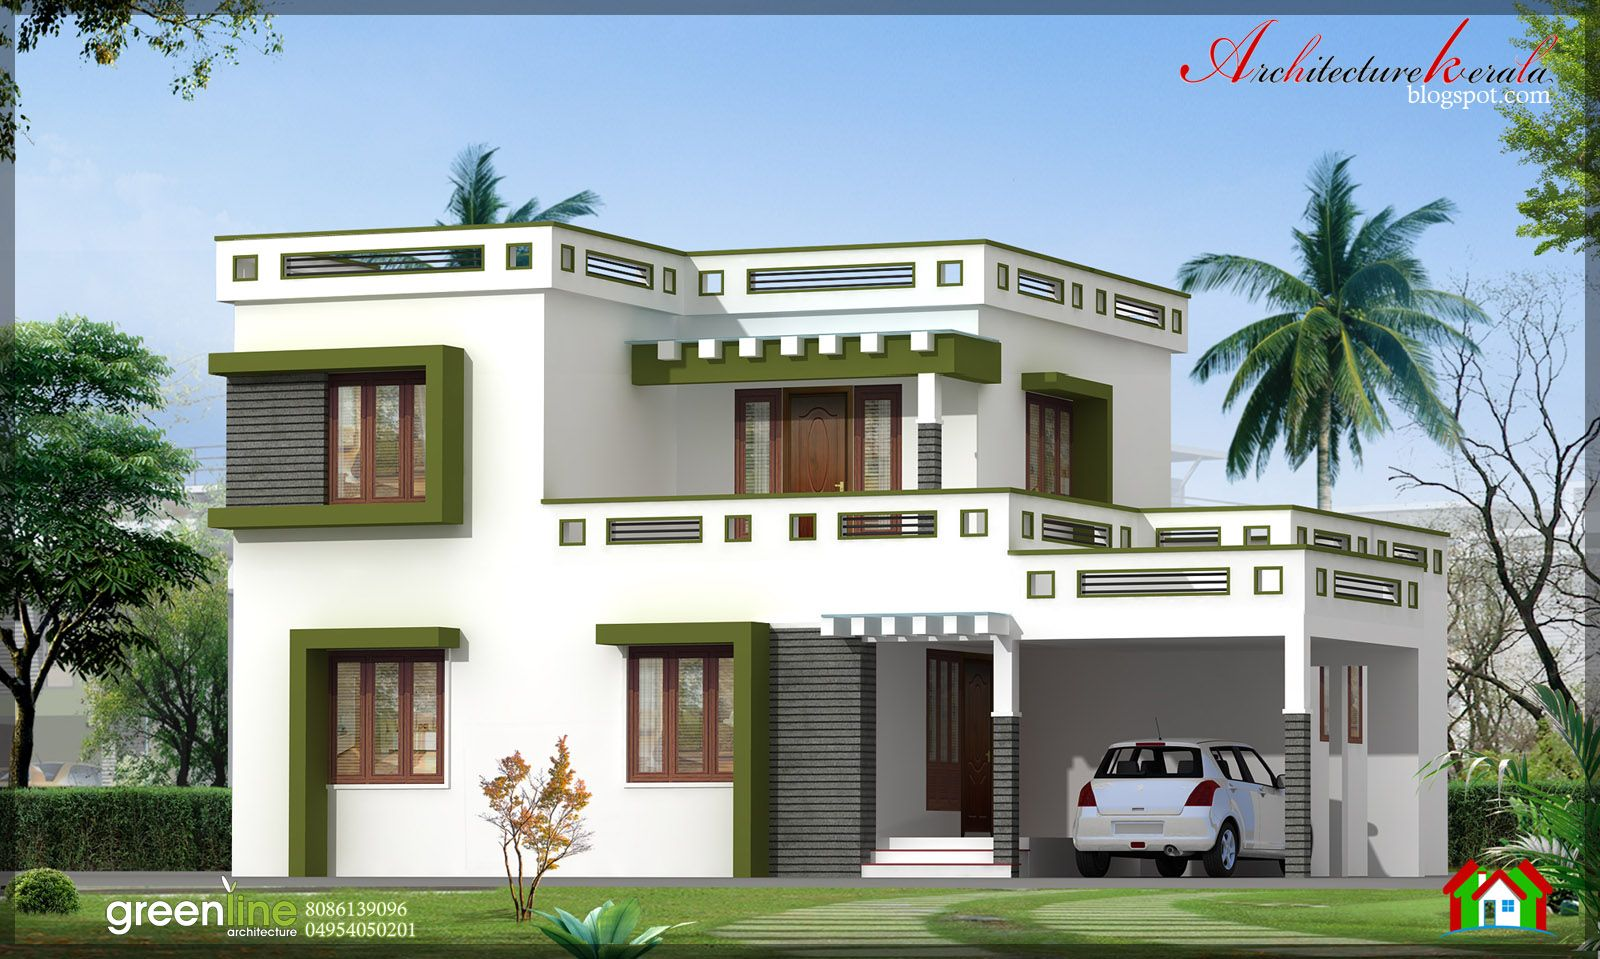 kerala house plan photos and its elevations contemporary style elevation traditional kerala. Black Bedroom Furniture Sets. Home Design Ideas